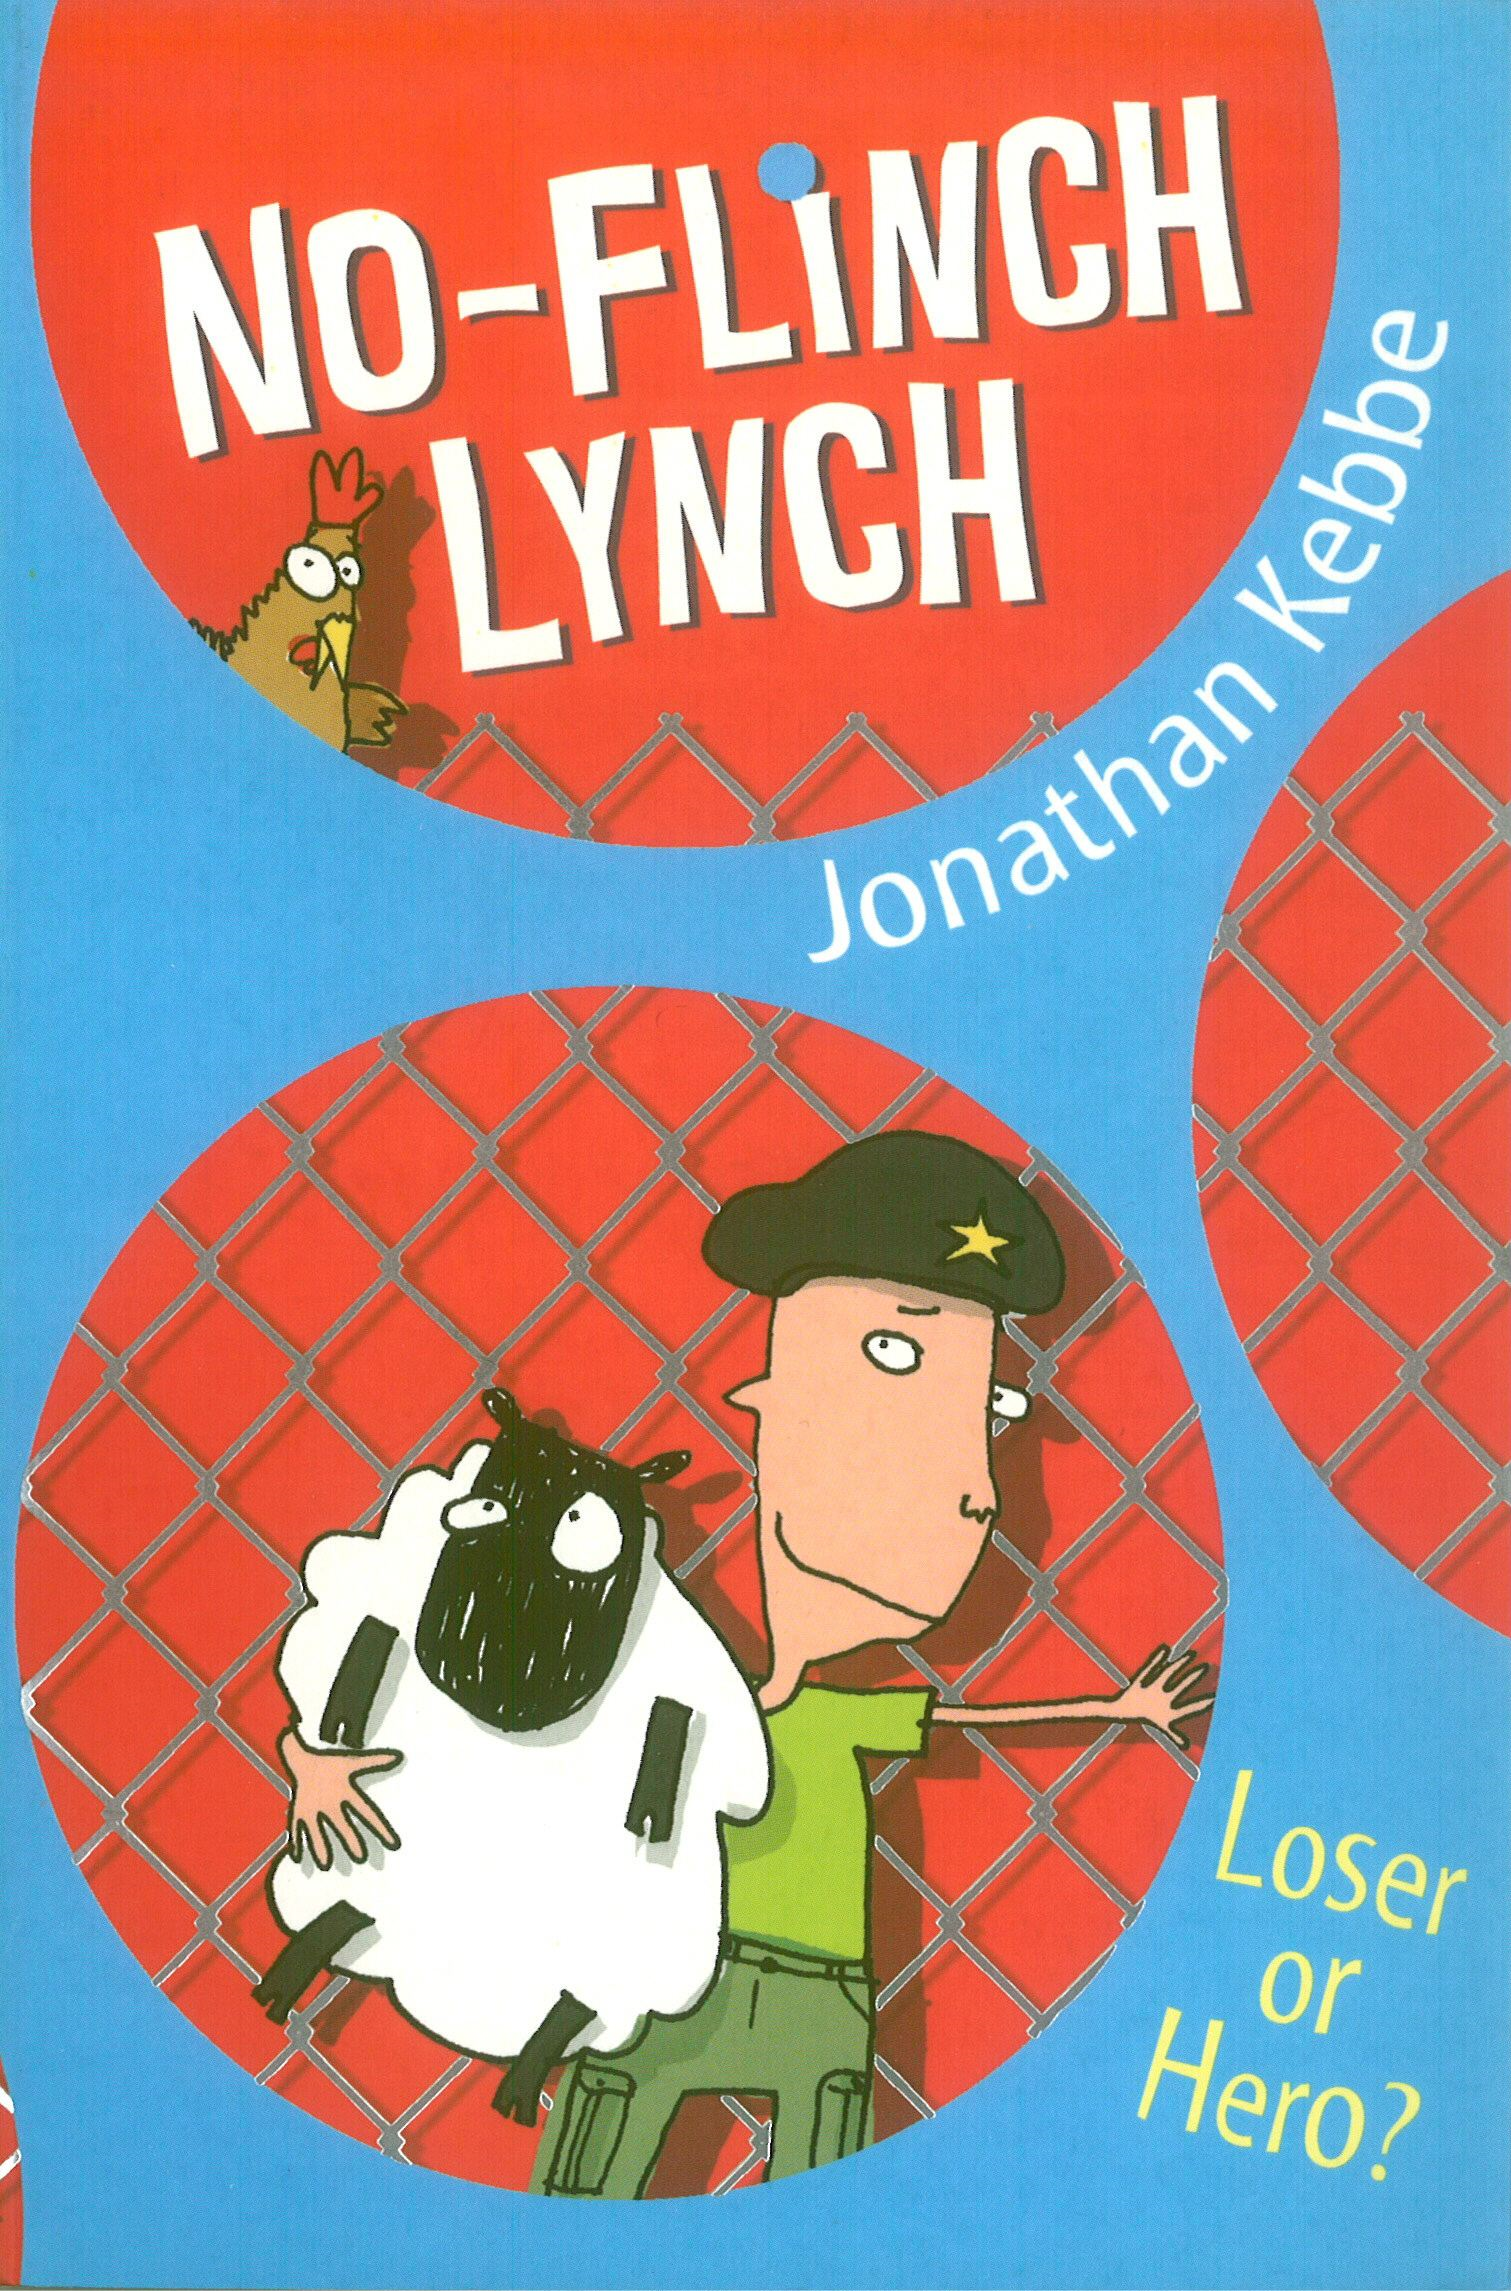 No-Flinch Lynch